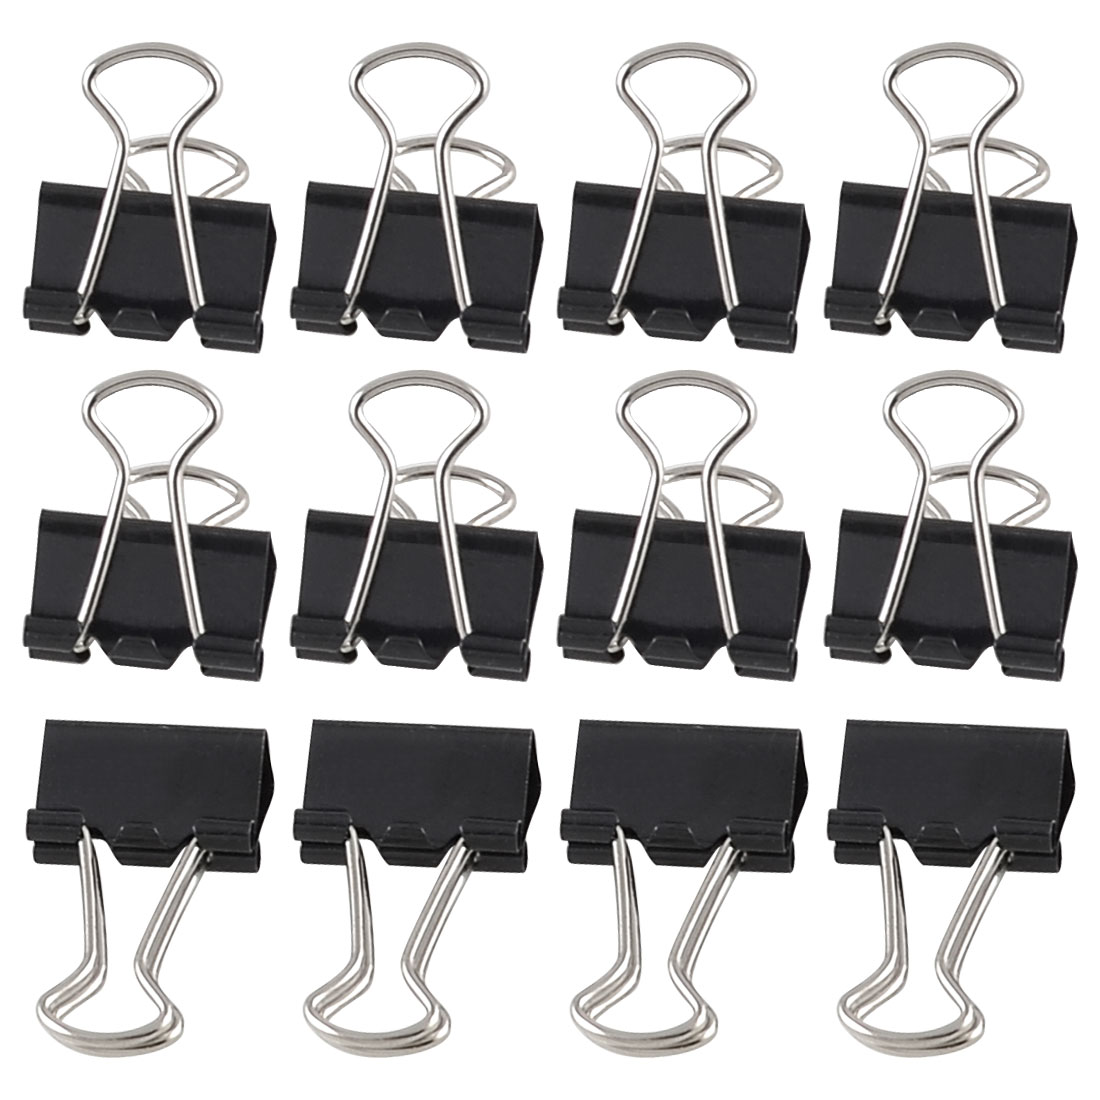 12 Pcs Stationery Papers File Organizer Metal Black Binder Clips 15mm Width